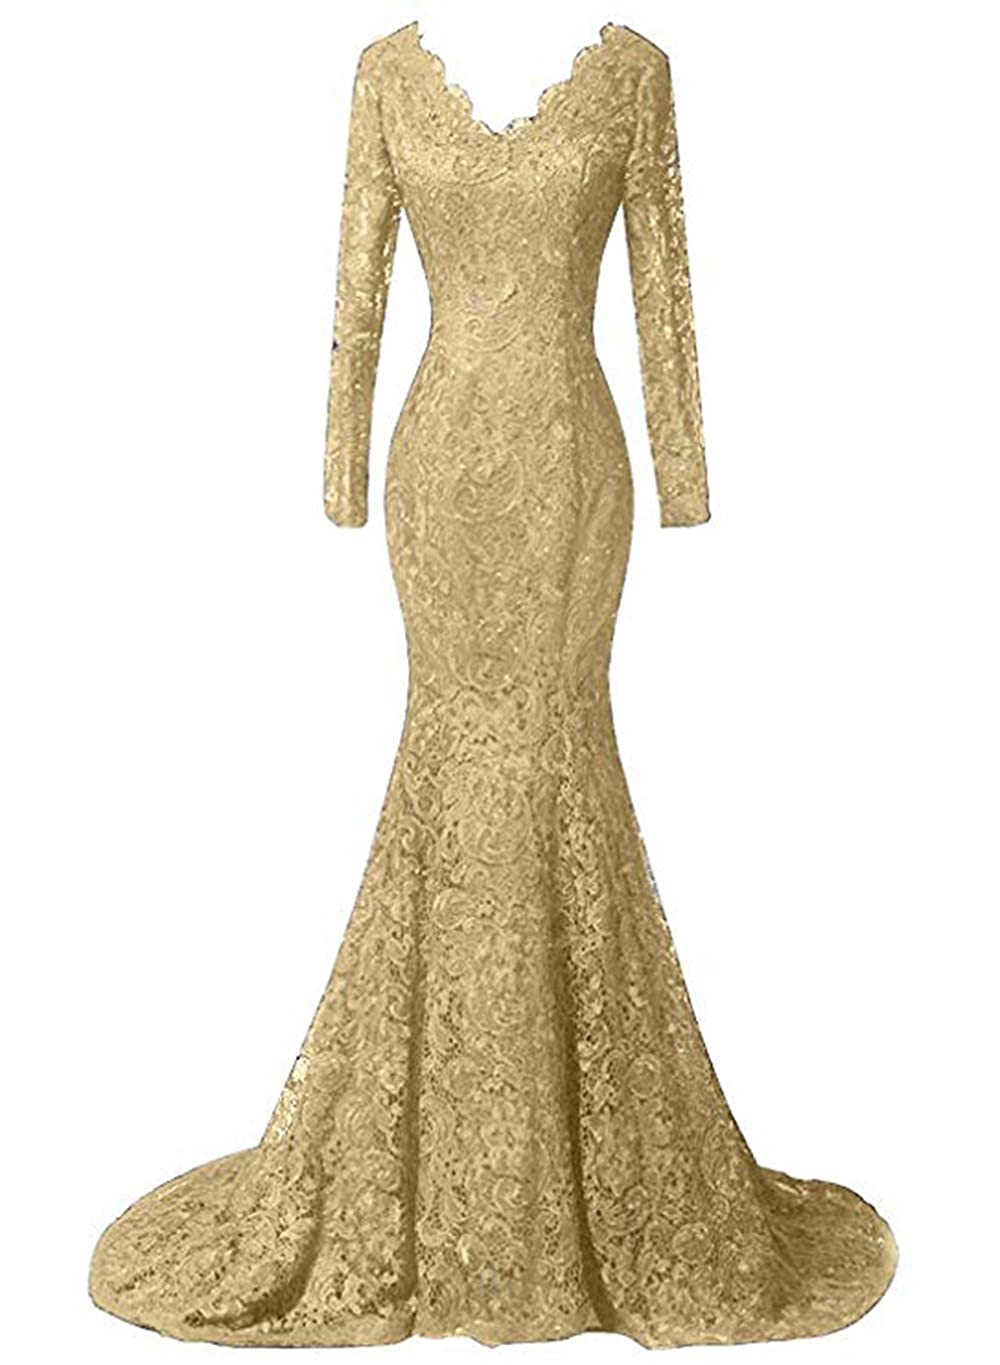 gold Ri Yun Women's Elegant Long Sleeves Lace Prom Dresses Mermaid VNeck Beaded Formal Evening Party Gowns